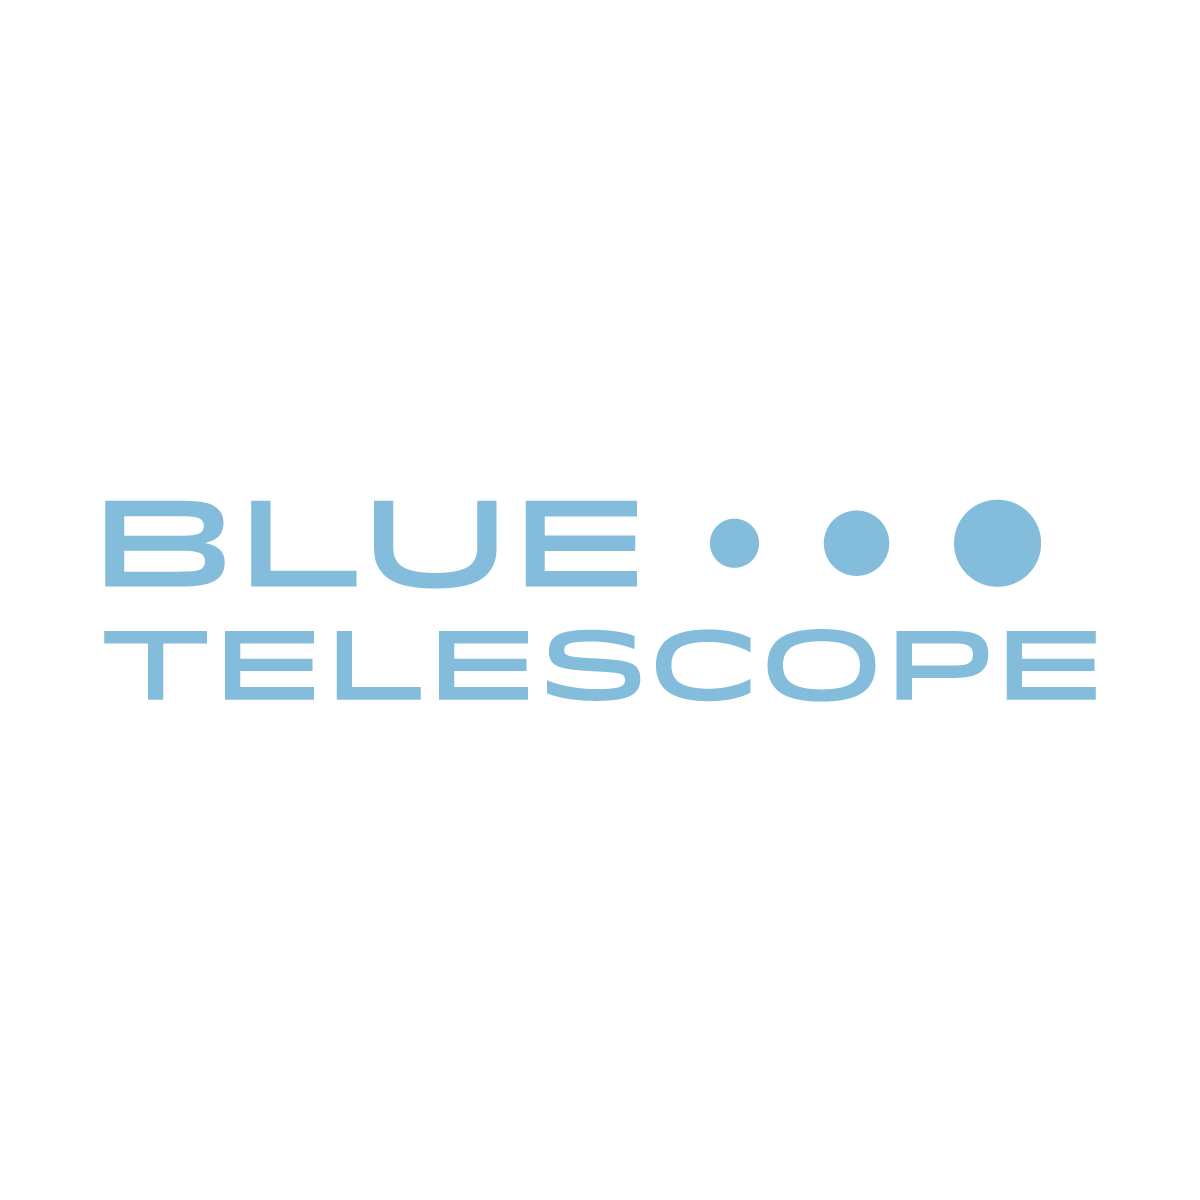 Copy of Blue Telescope